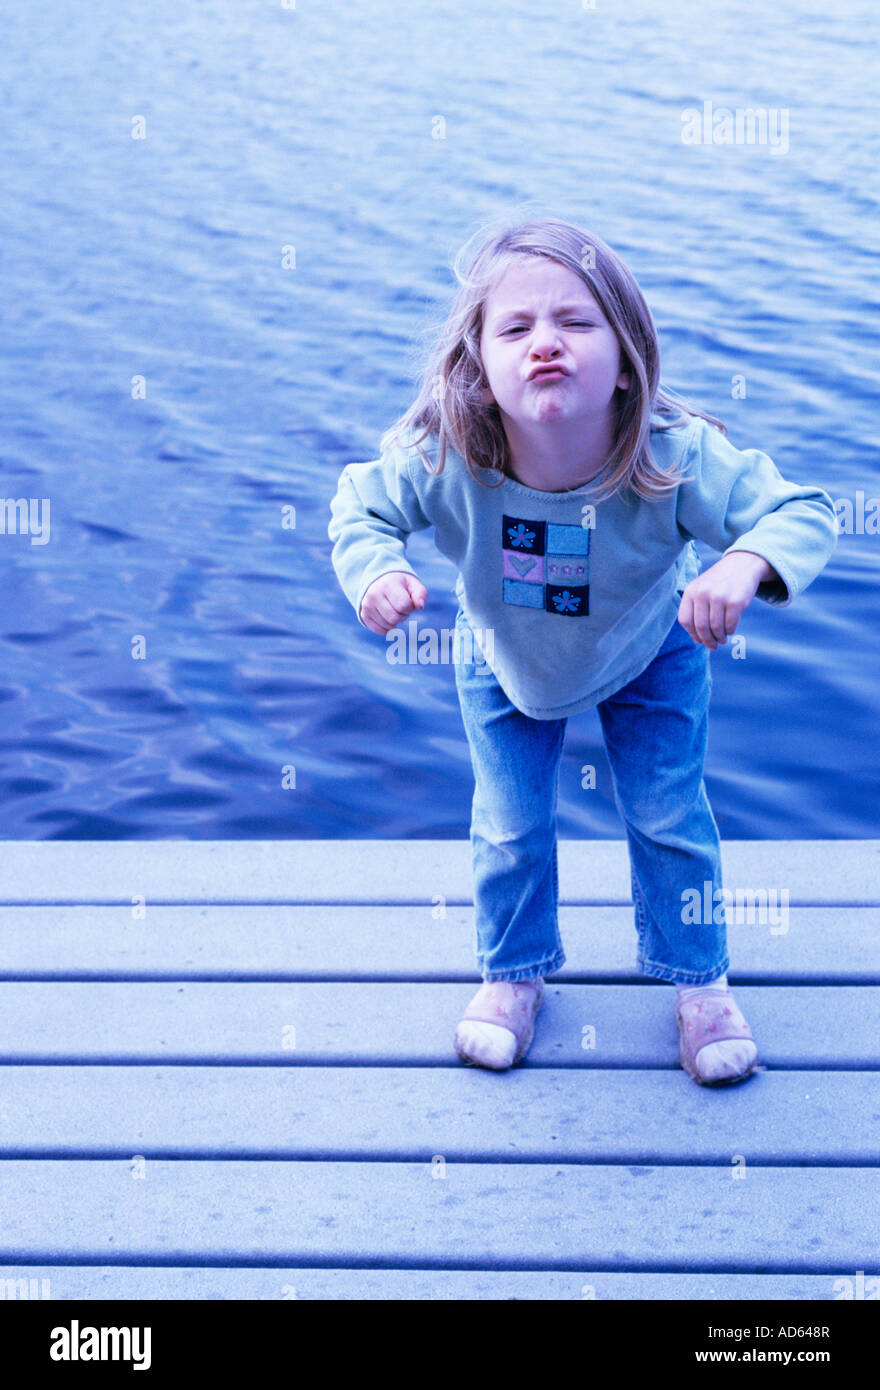 Young girl on dock making face - Stock Image